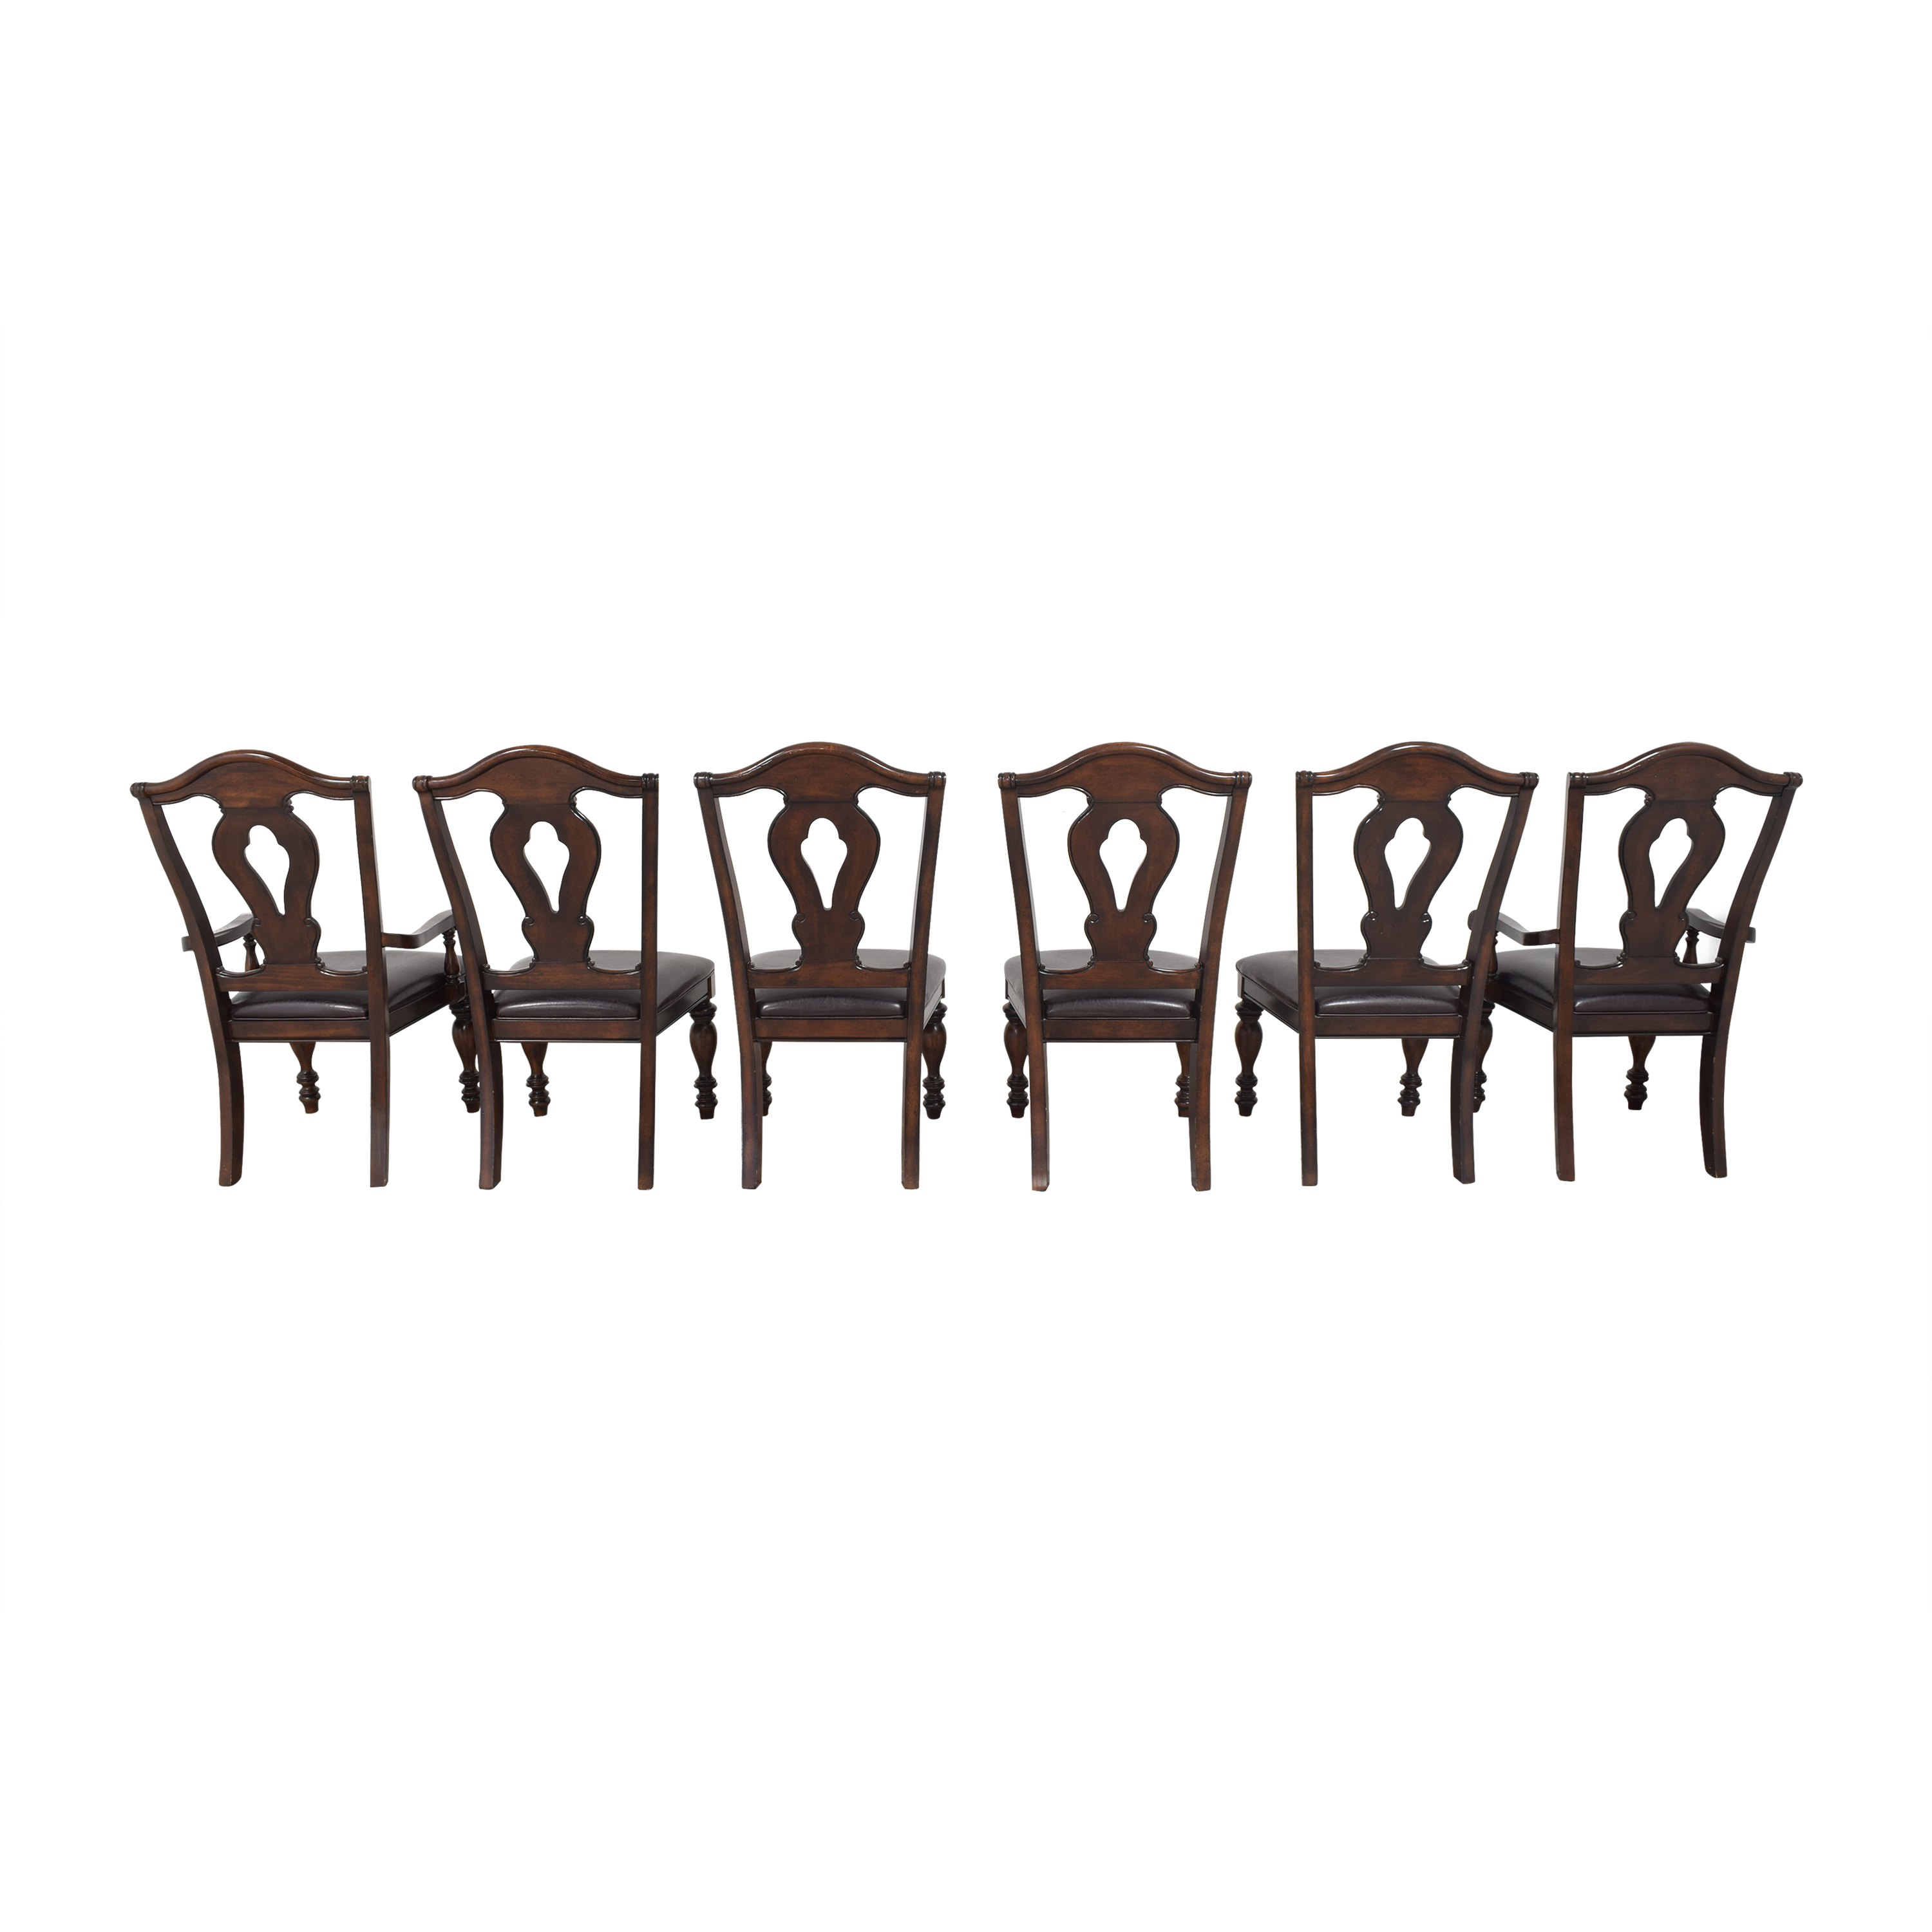 Legacy Classic Furniture Legacy Classic Furniture Dining Chairs nj